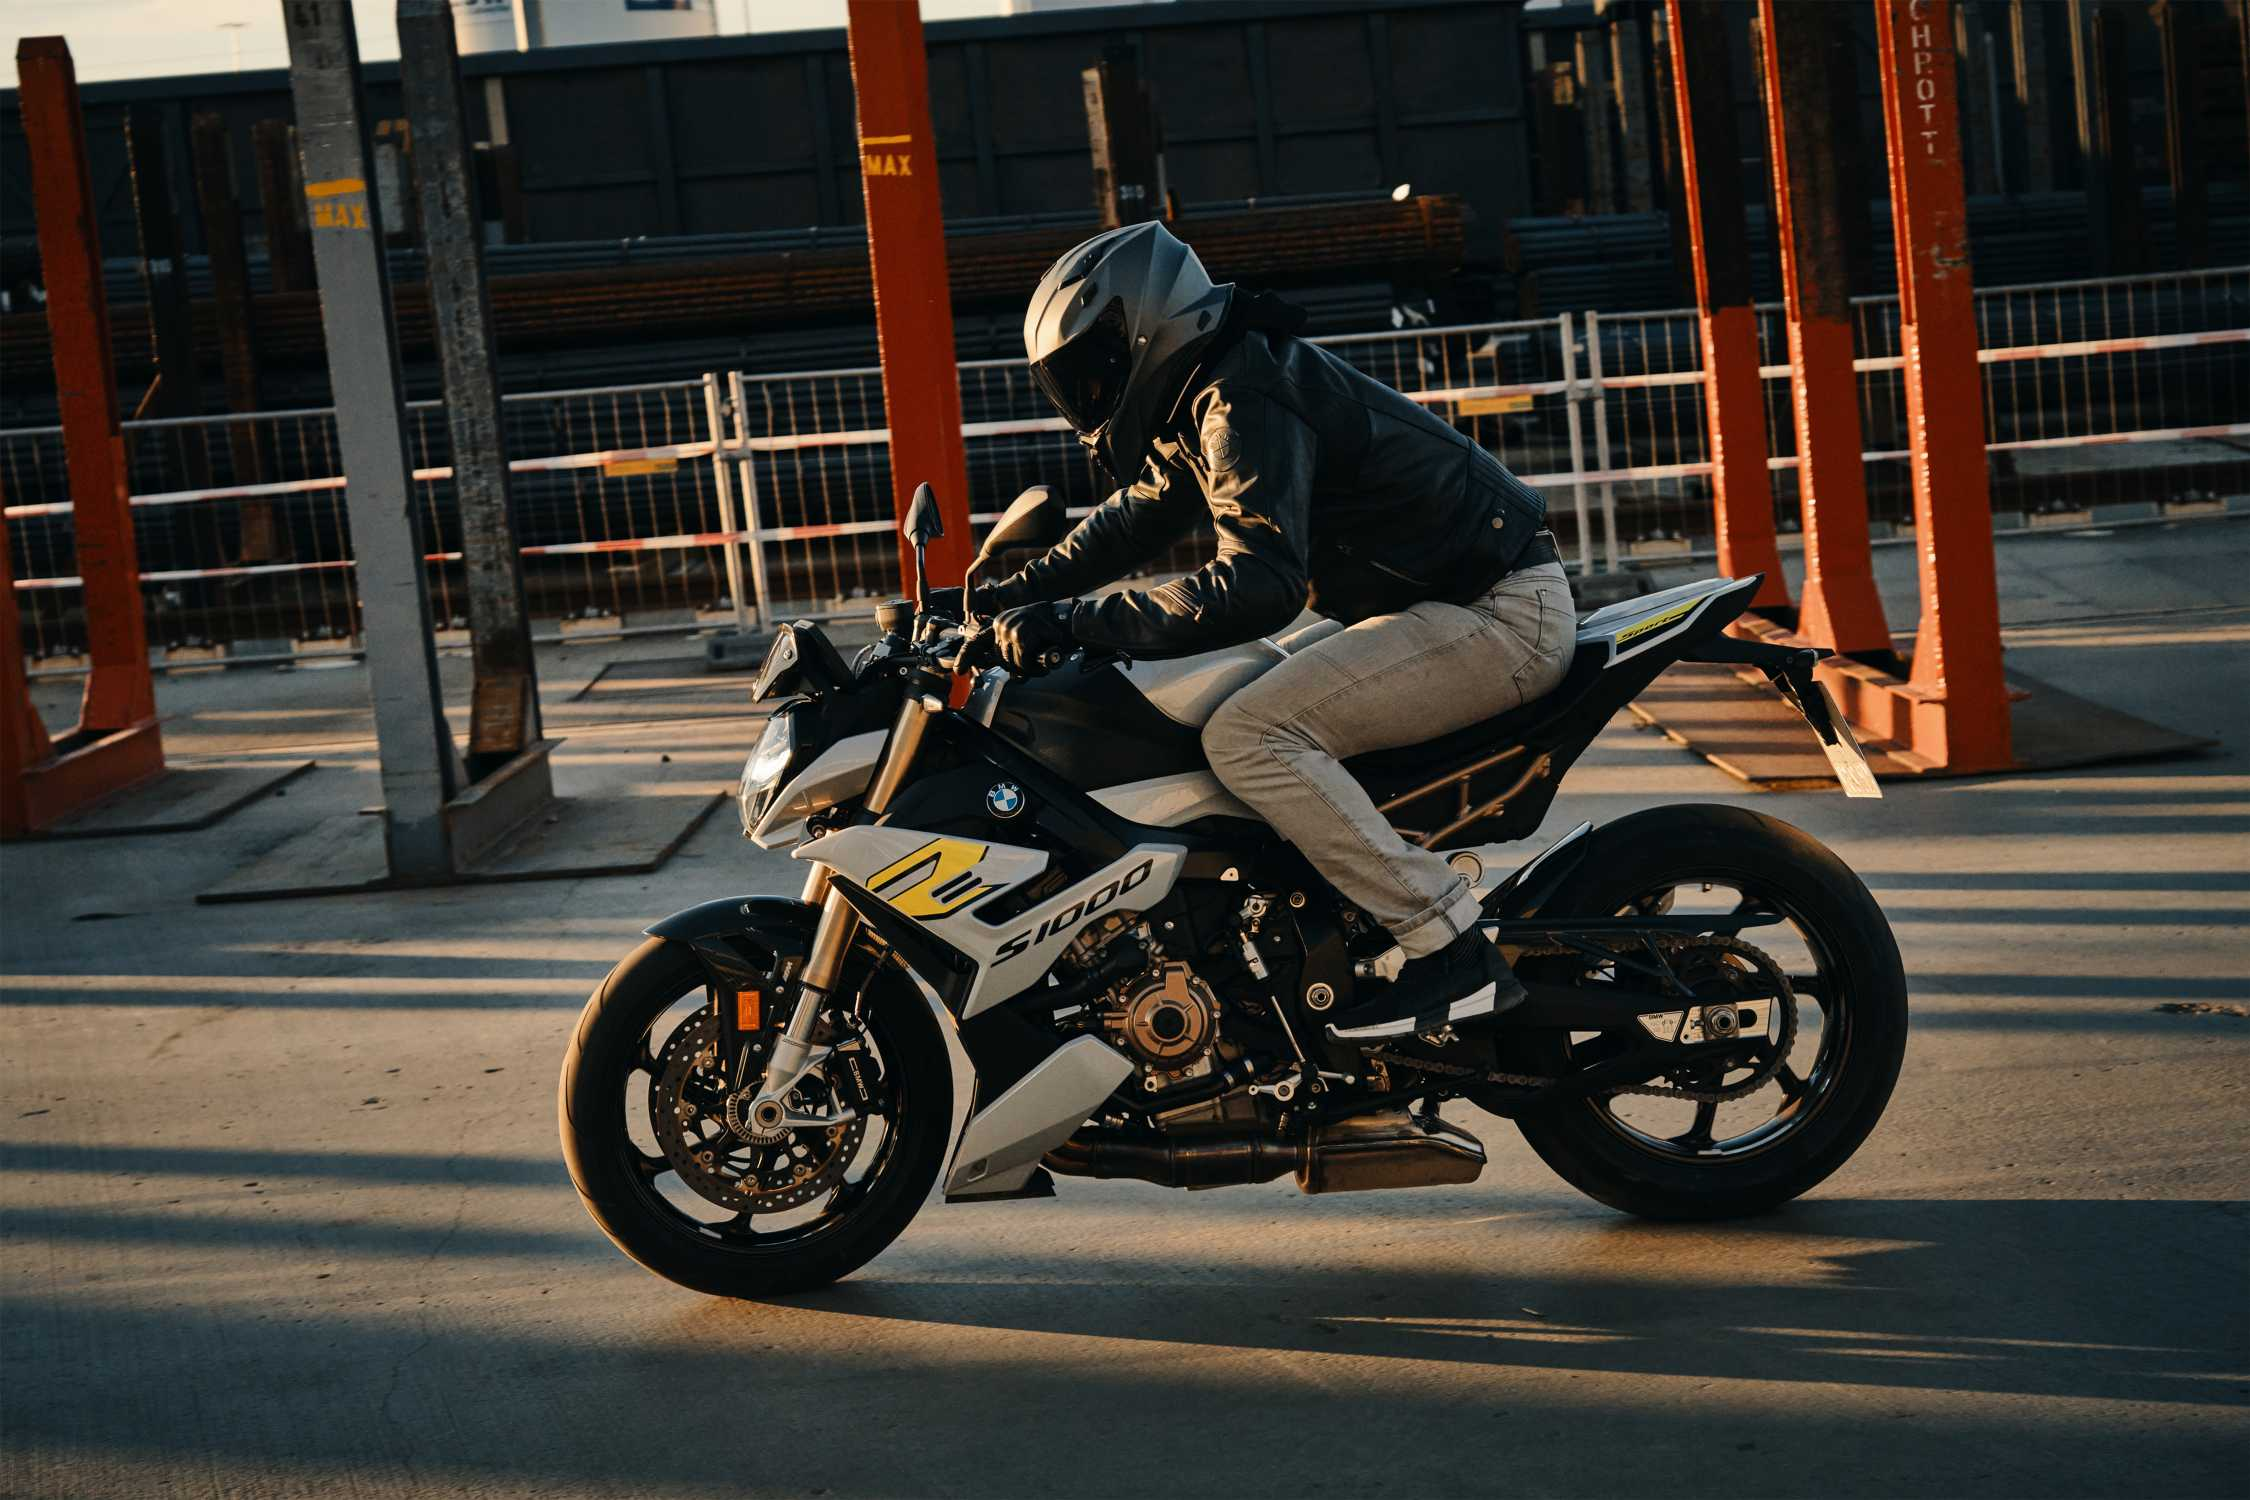 The new BMW S 1000 R in action. (11/2020)